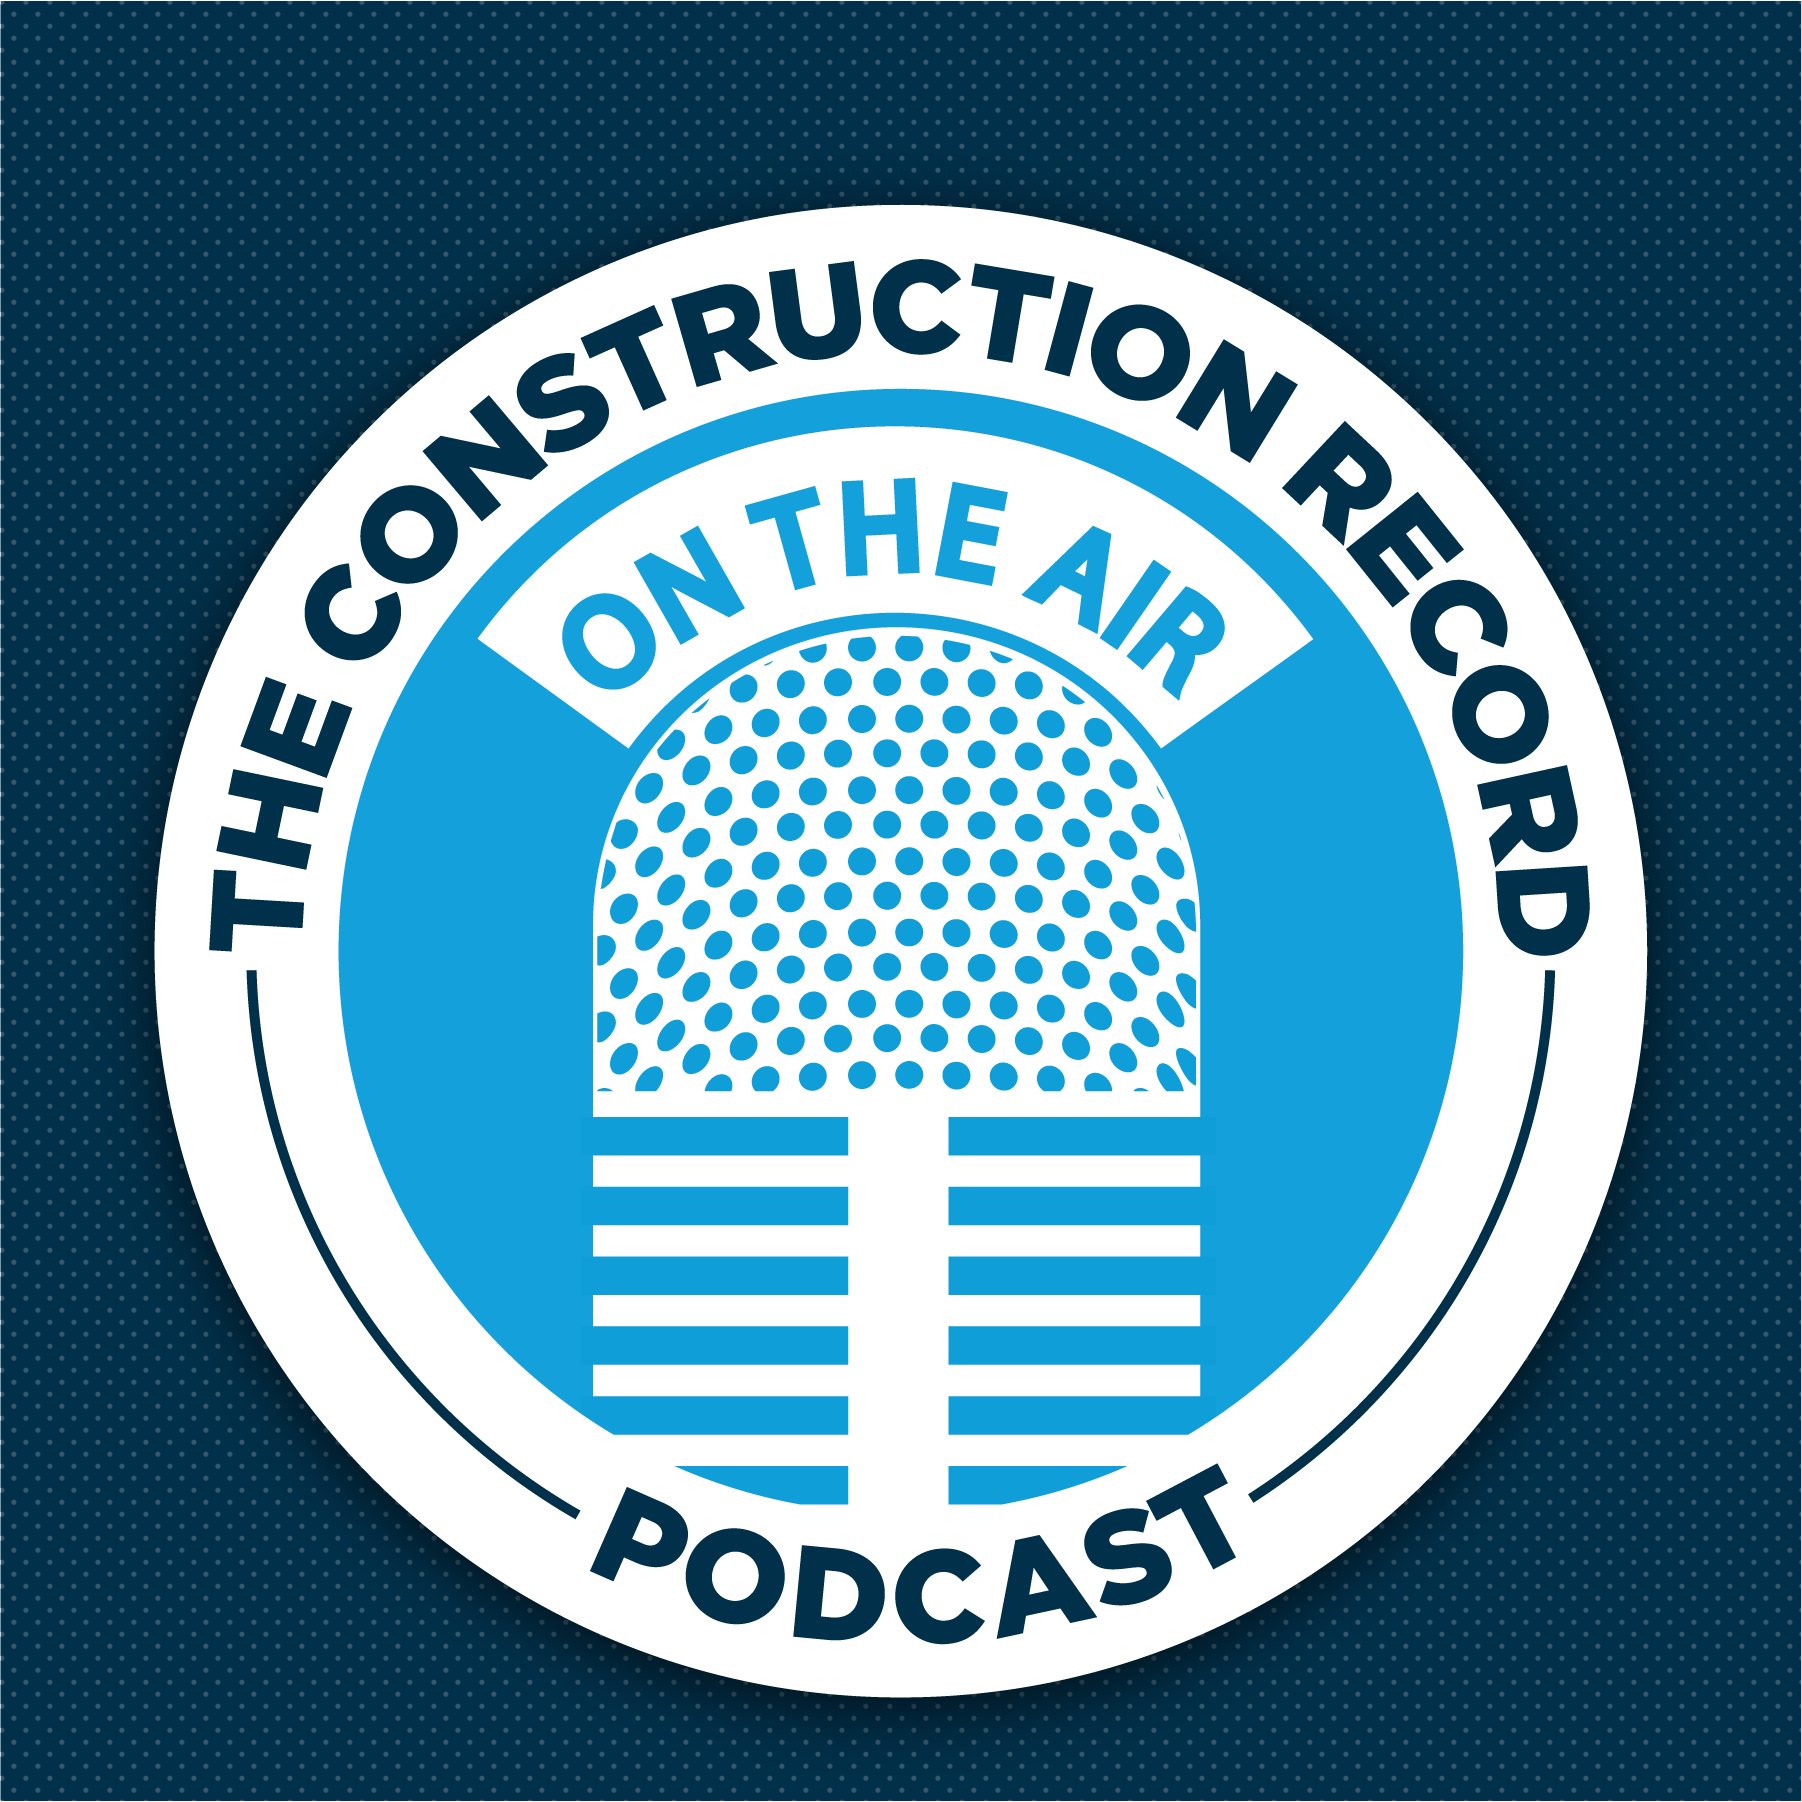 The Construction Record Podcast show art